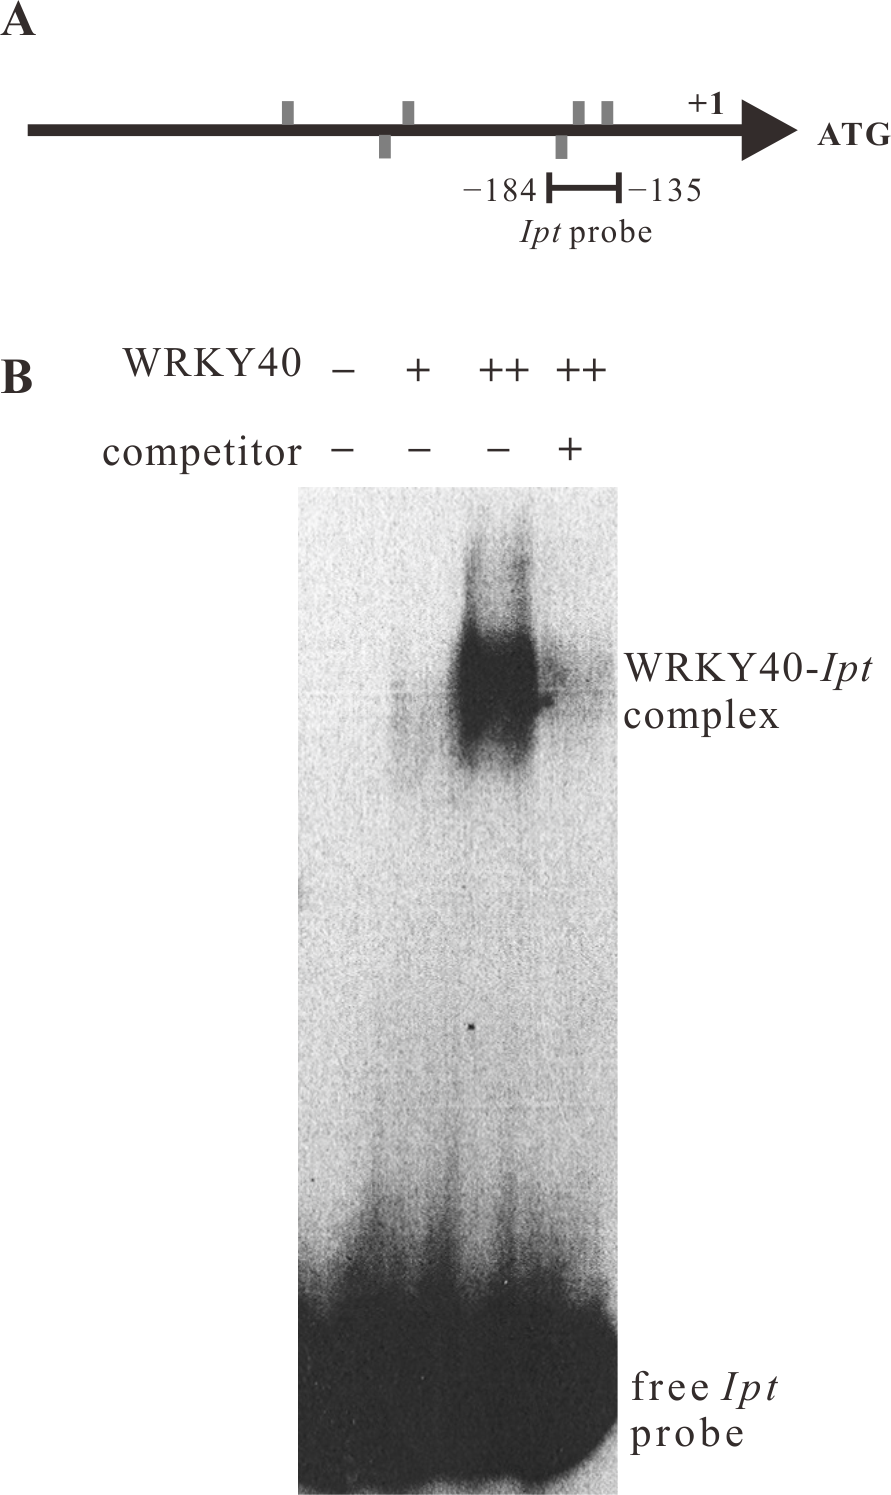 WRKY40 binds to the <i>Ipt</i> promoter <i>in vitro</i>.